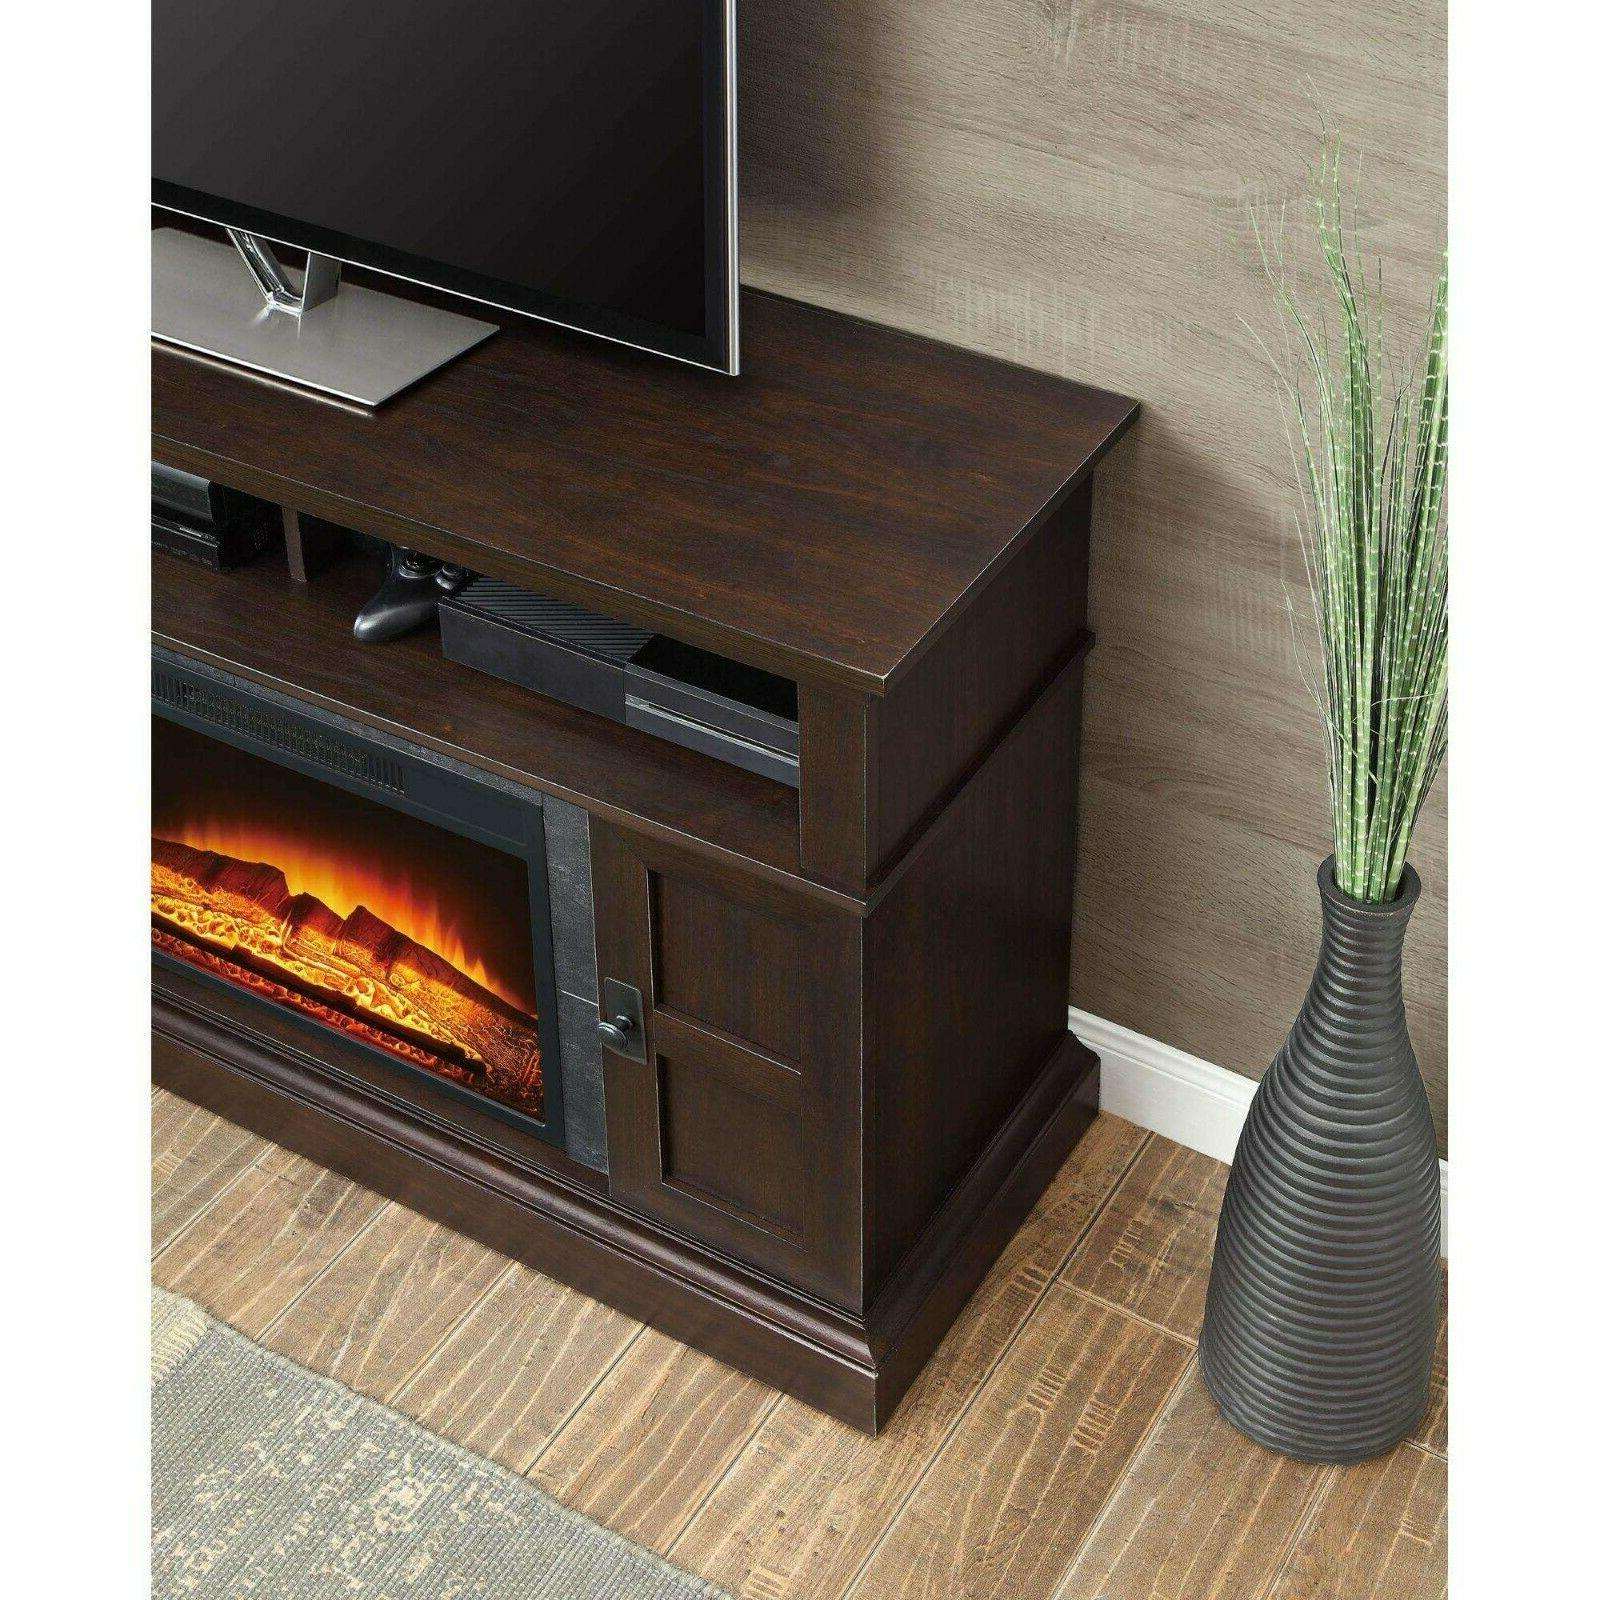 TV Stand Electric Control Cherry